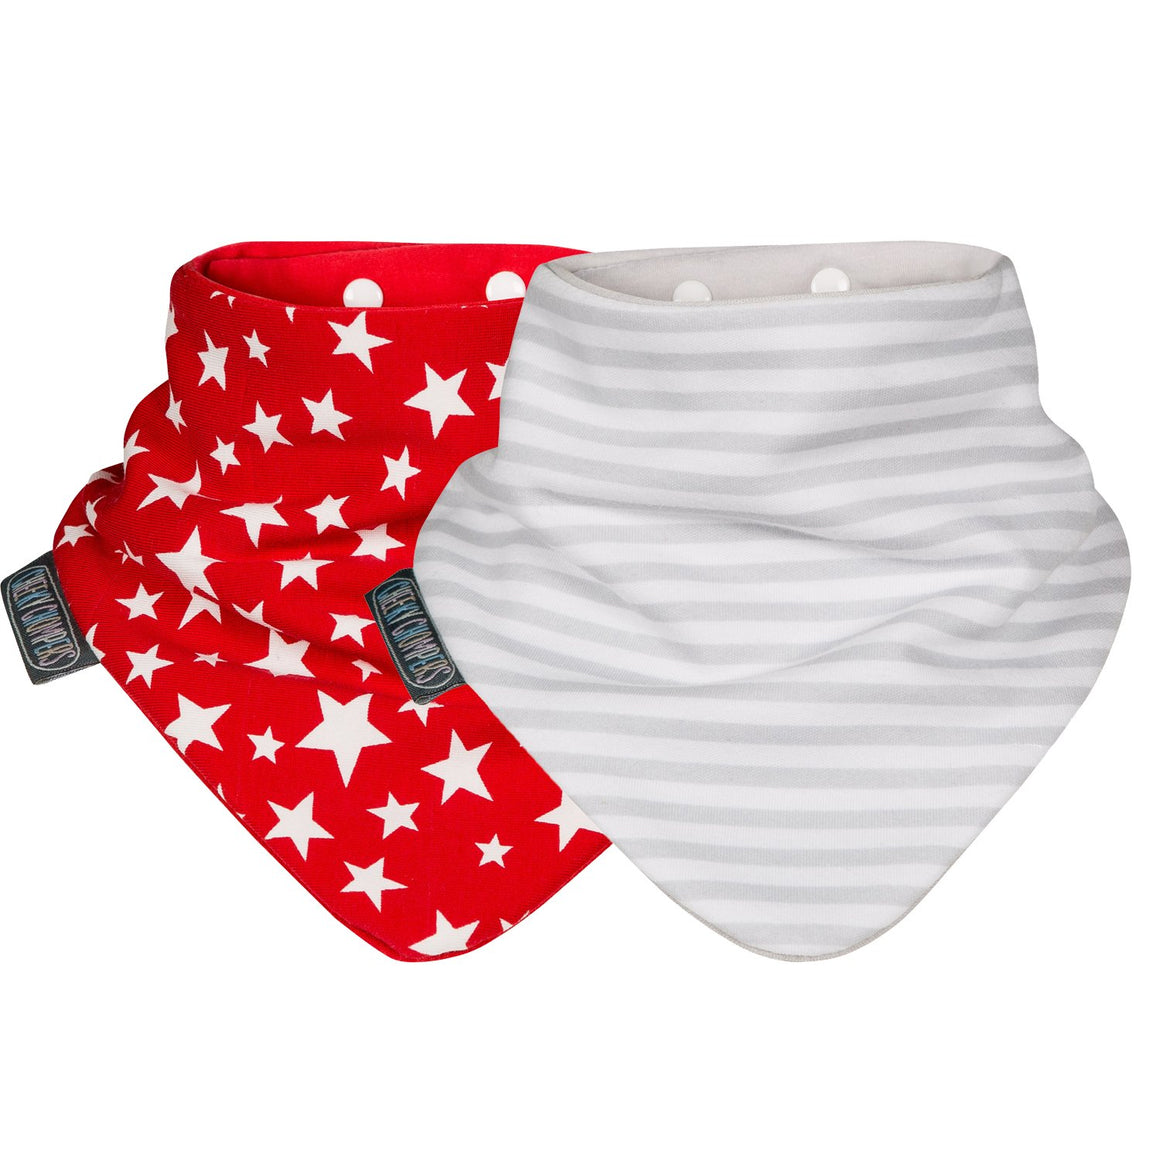 Neckerbib - Red Stars & Stripes Cheeky Chompers